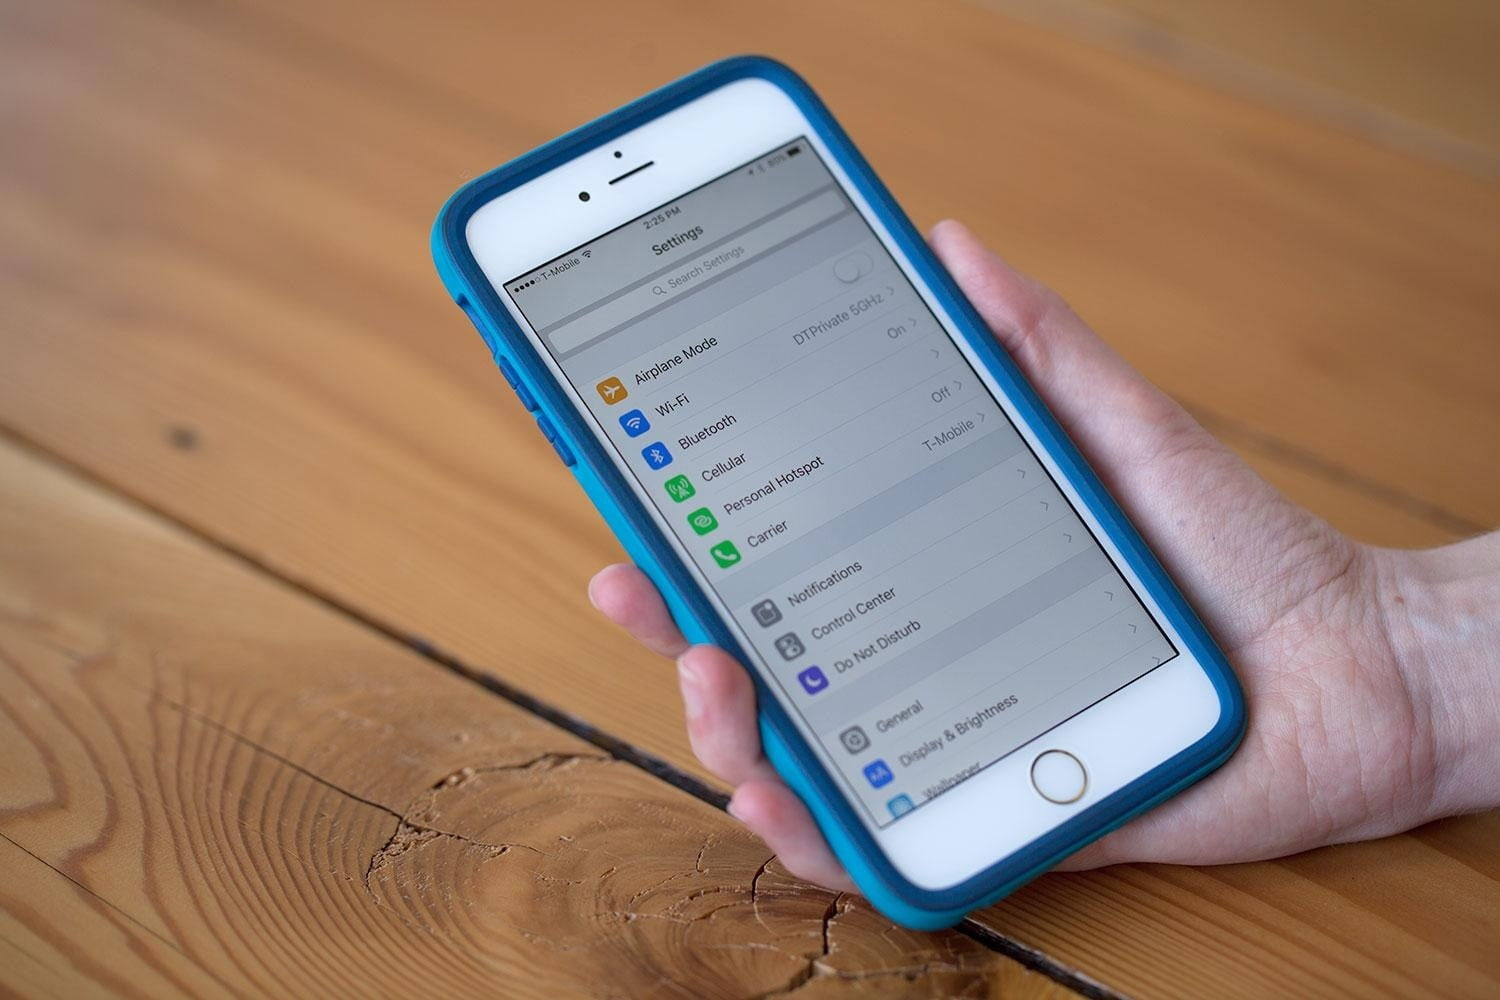 25 tips to make your iPhone battery last longer (and a